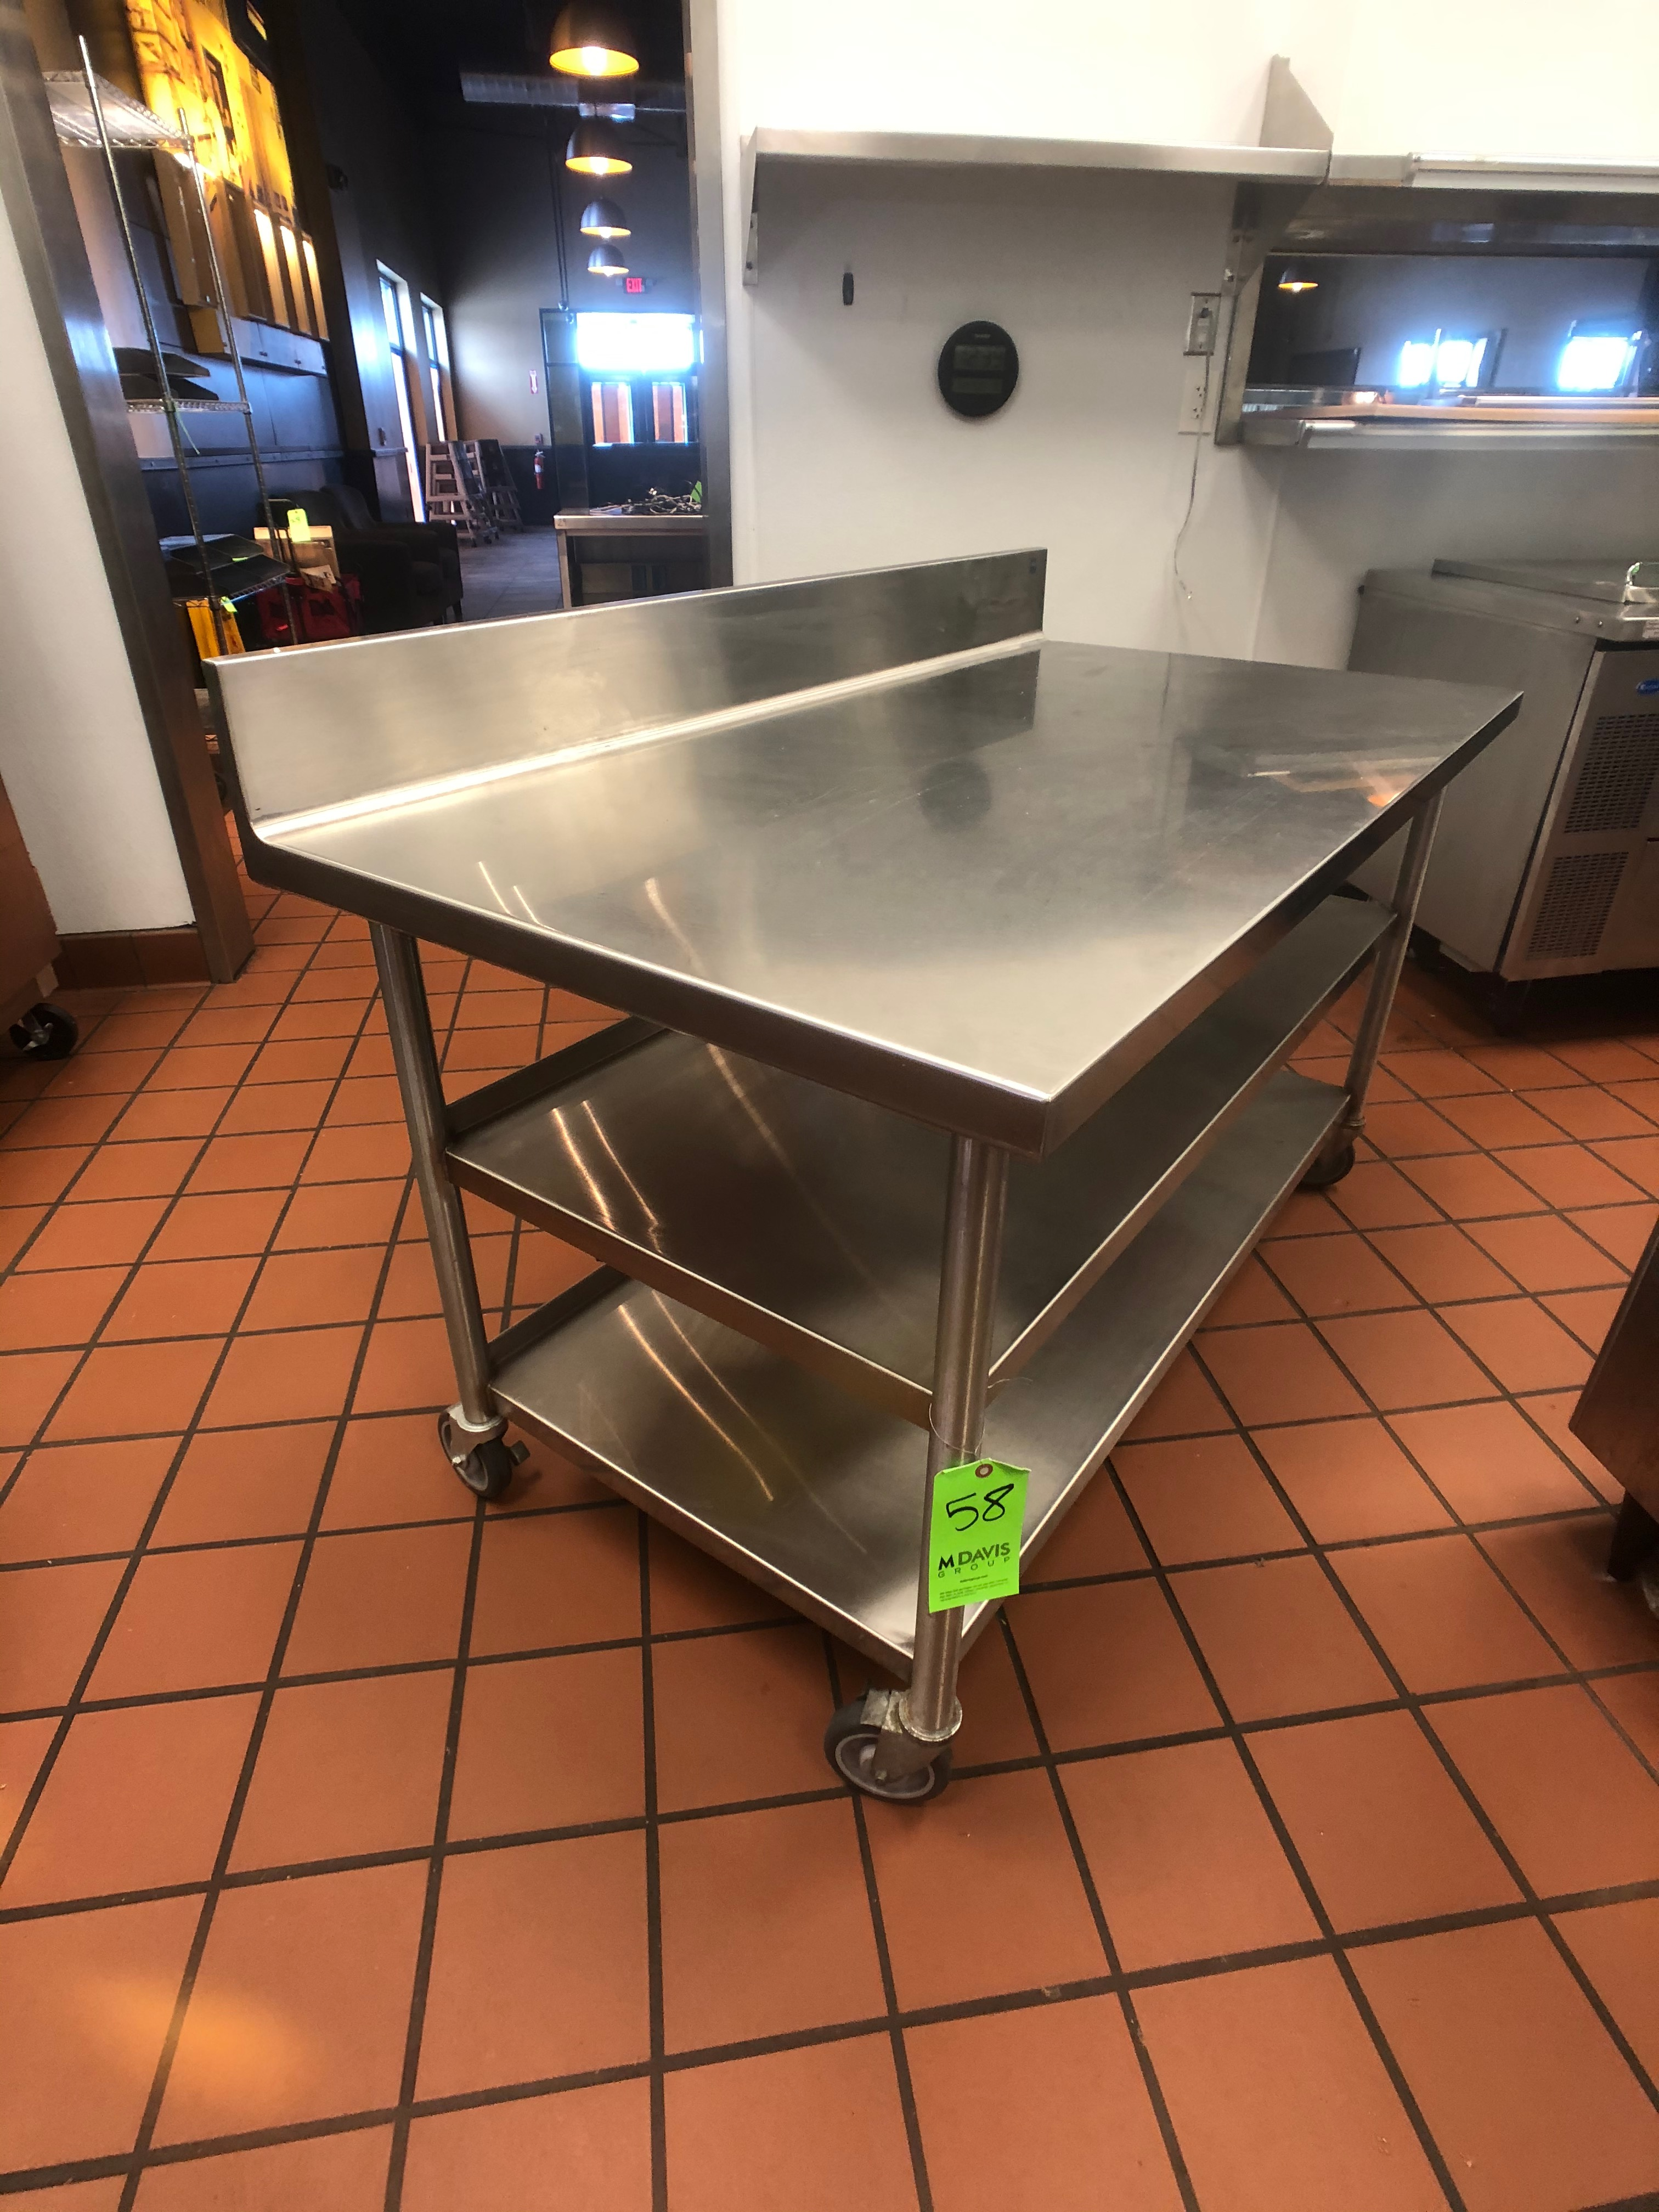 """S/S Table with Racks and S/S Backsplash, Approx. 60"""" L x 32"""" W, Mounted on Casters - Image 3 of 3"""